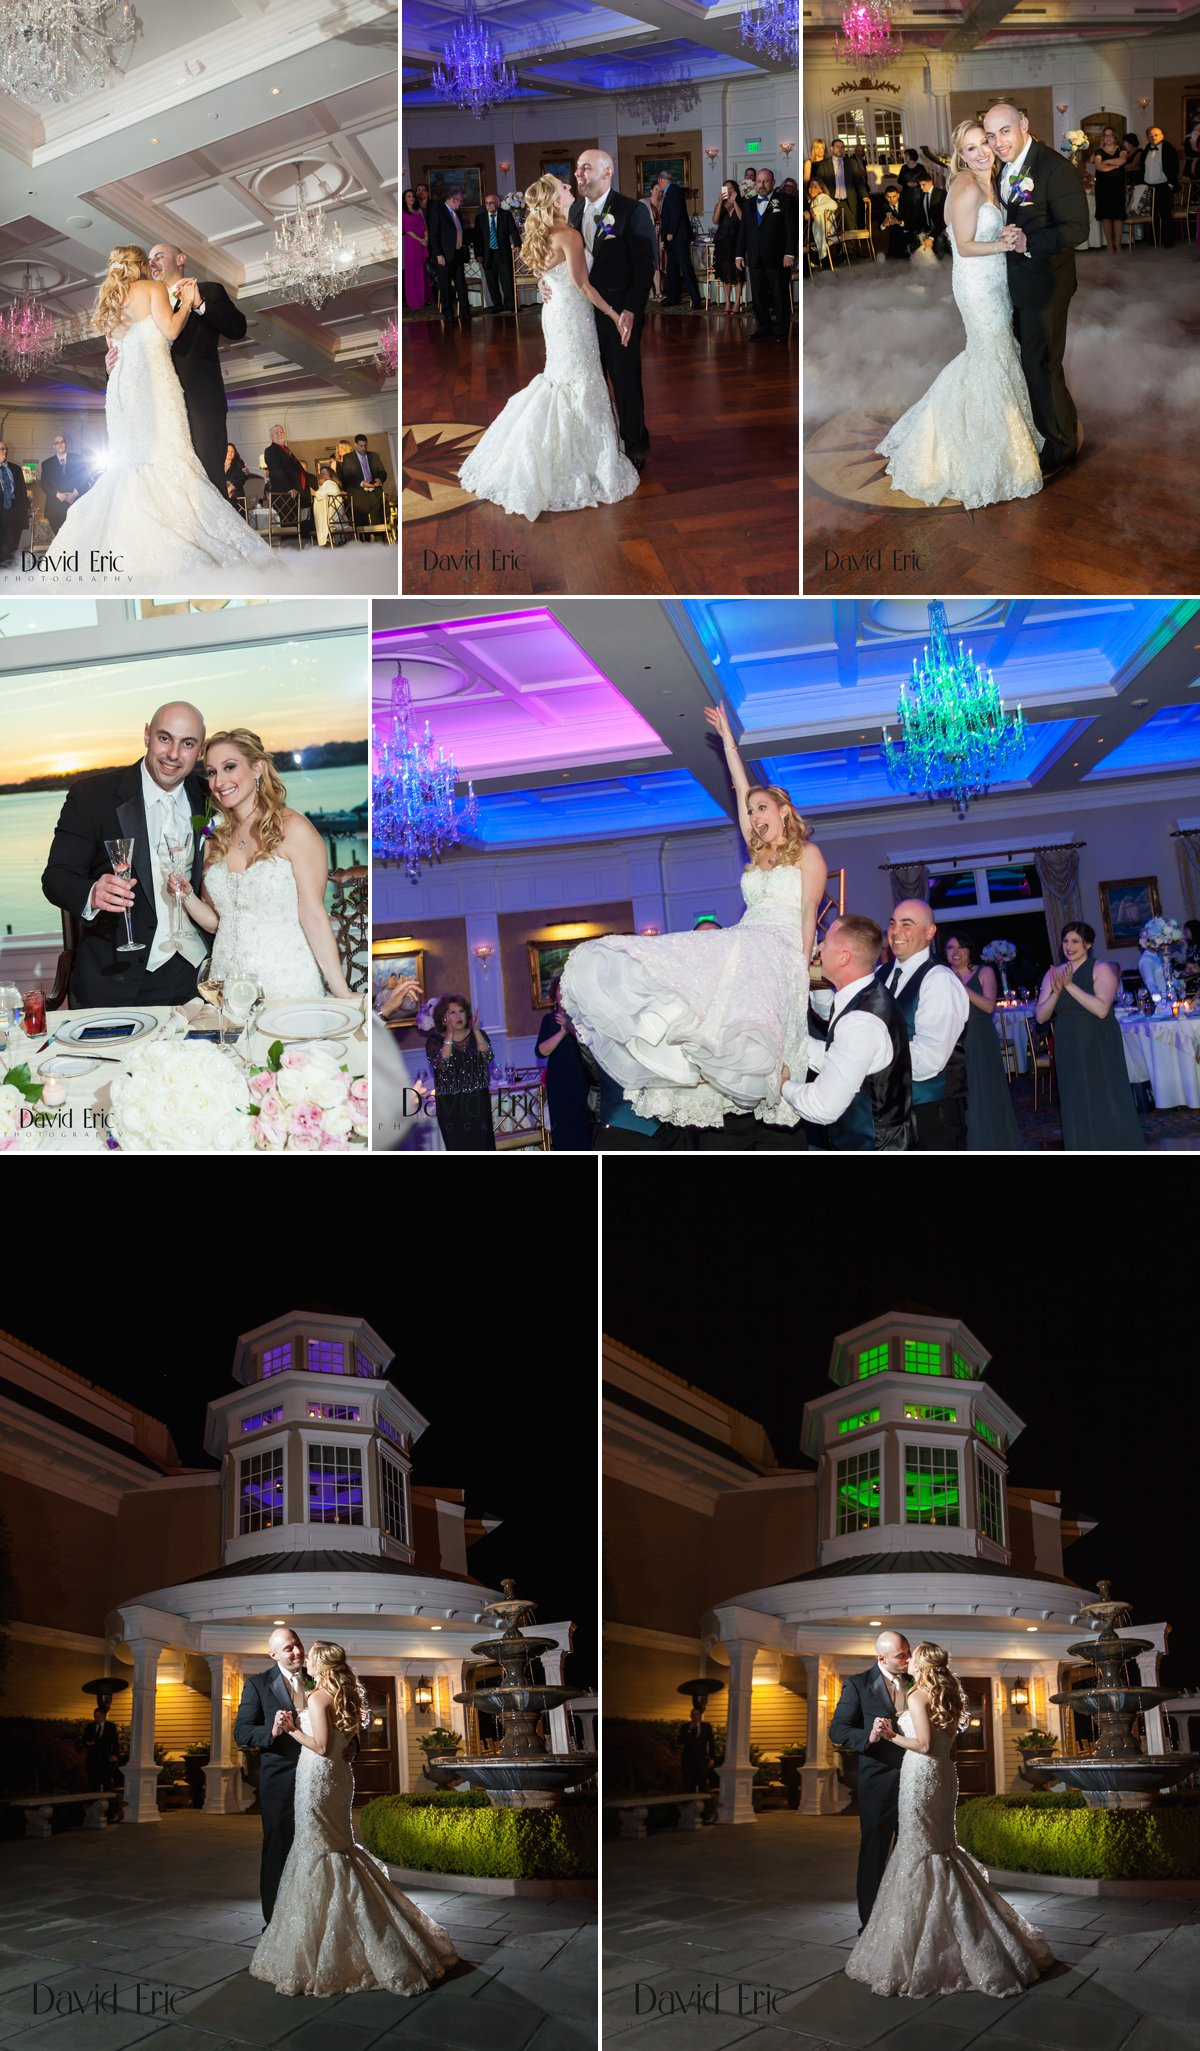 Clarks Landing Yacht Club Point Pleasant New Jersey Pelta Wedding - David Eric Photography 3